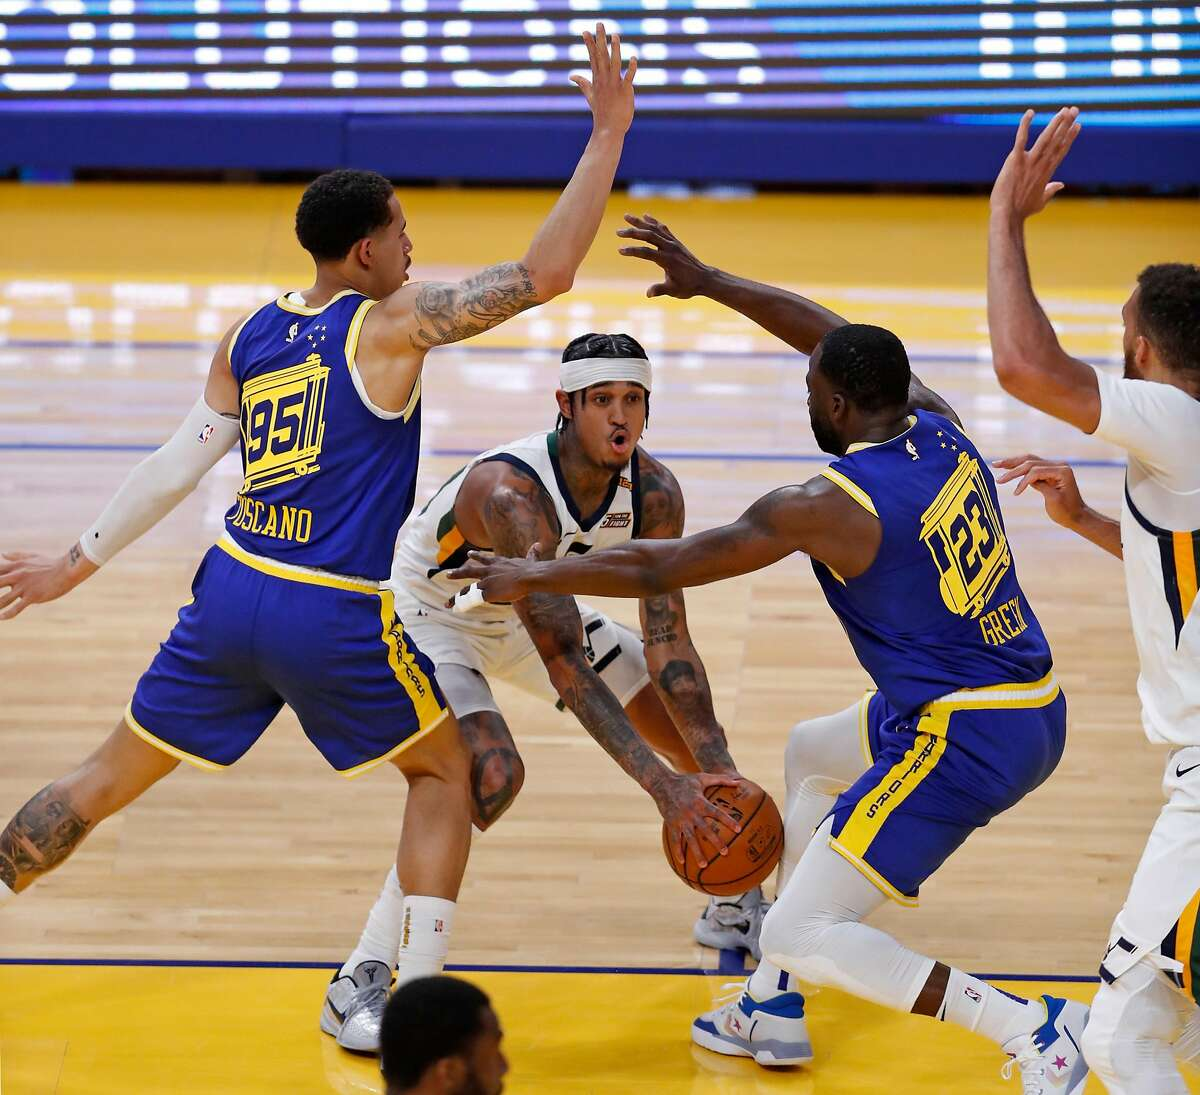 Golden State Warriors' Juan Toscano-Anderson and Draymond Green double team Utah Jazz' Jordan Clarkson during 2nd quarter of NBA game at Chase Center in San Francisco, Calif., on Monday, May 10, 2021.